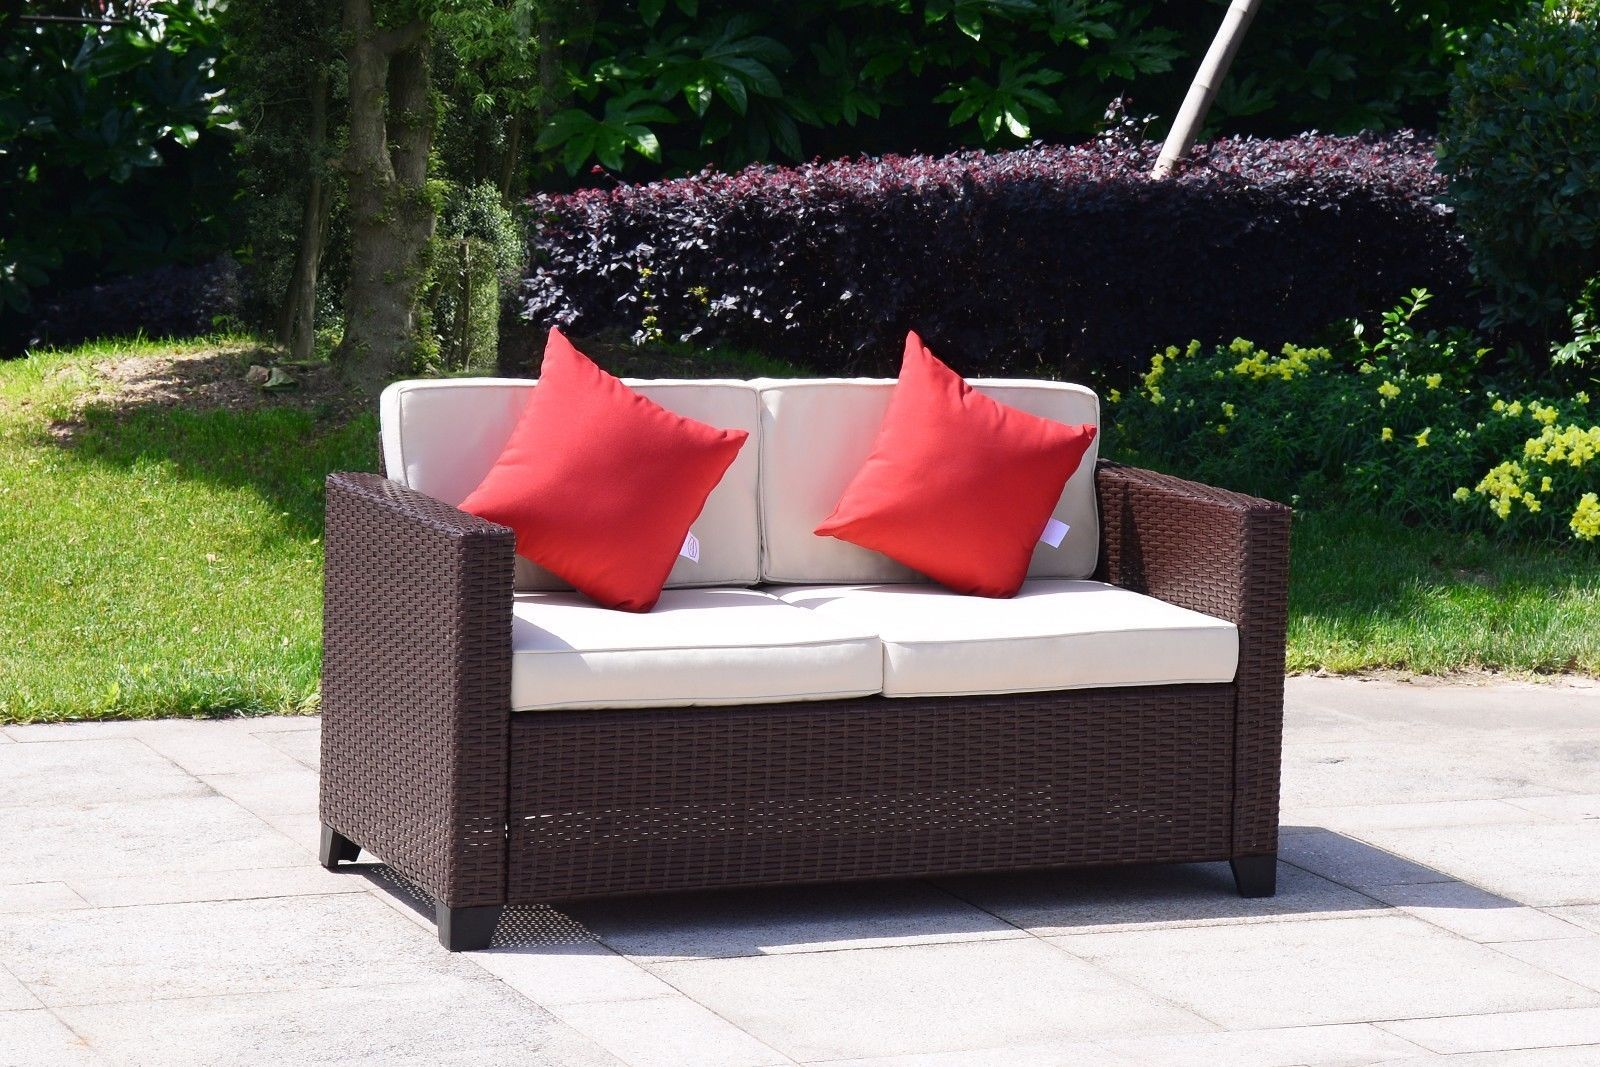 4 PC Wicker Rattan Furniture Set Sofa Cushioned Patio Lawn Loveseat Sectional